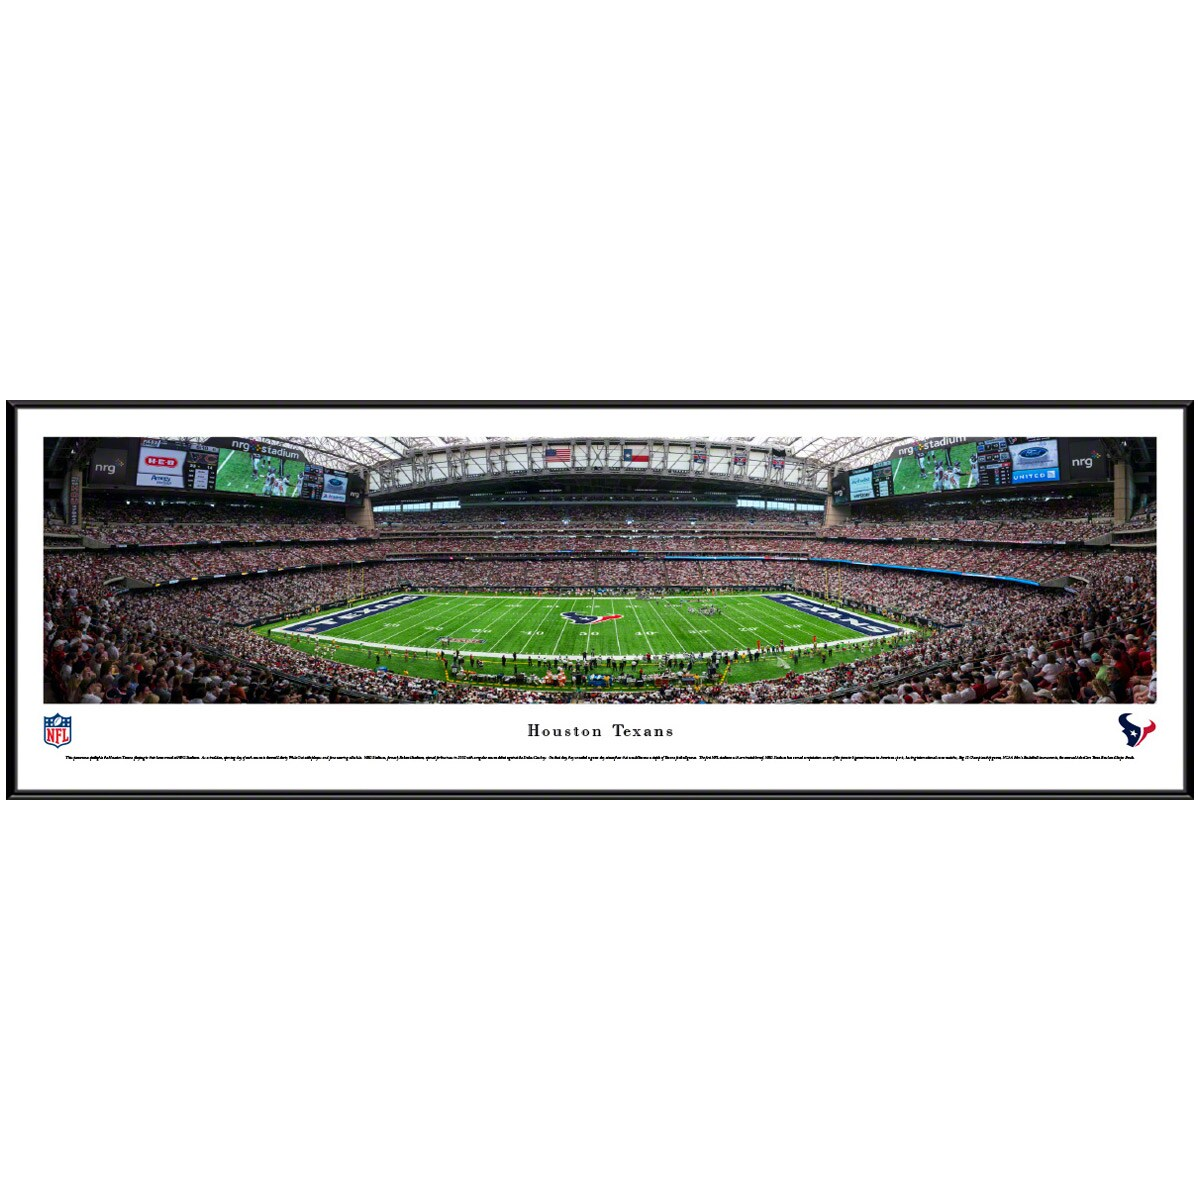 "Houston Texans 40.25"" x 13.75"" Standard Frame Panoramic Photo"